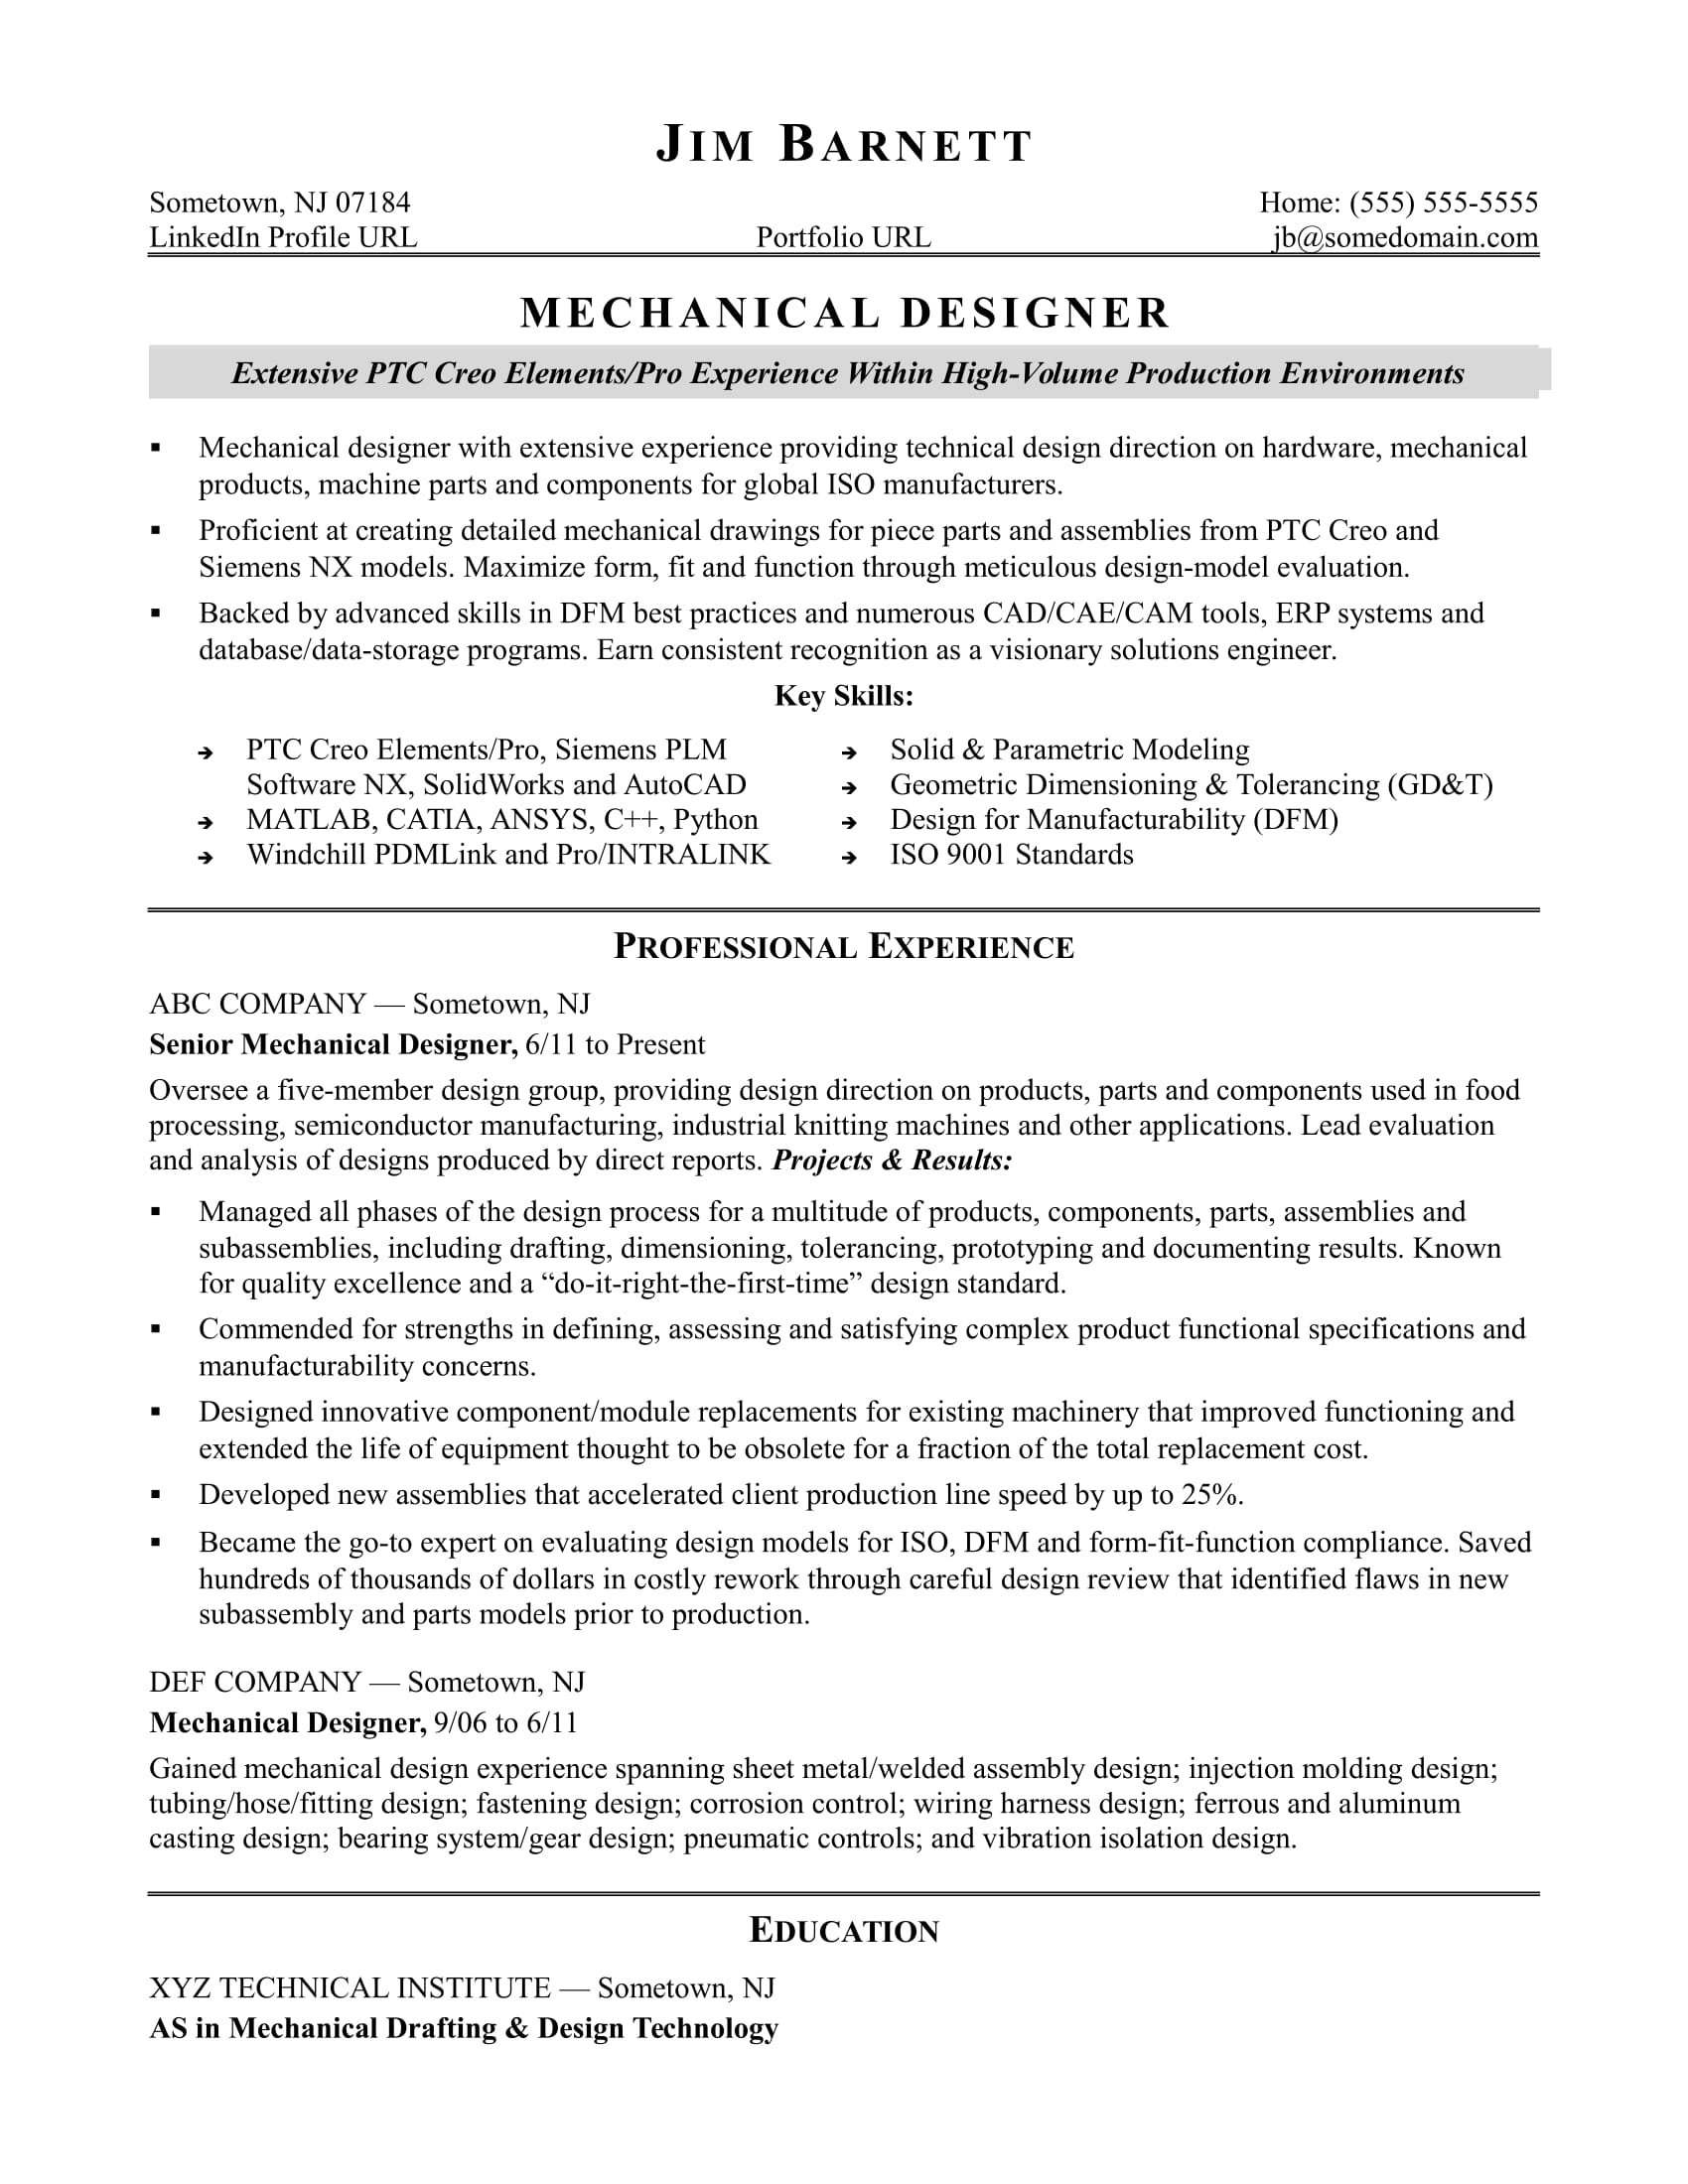 Industrial Engineering Resume Template - Sample Resume for An Experienced Mechanical Designer